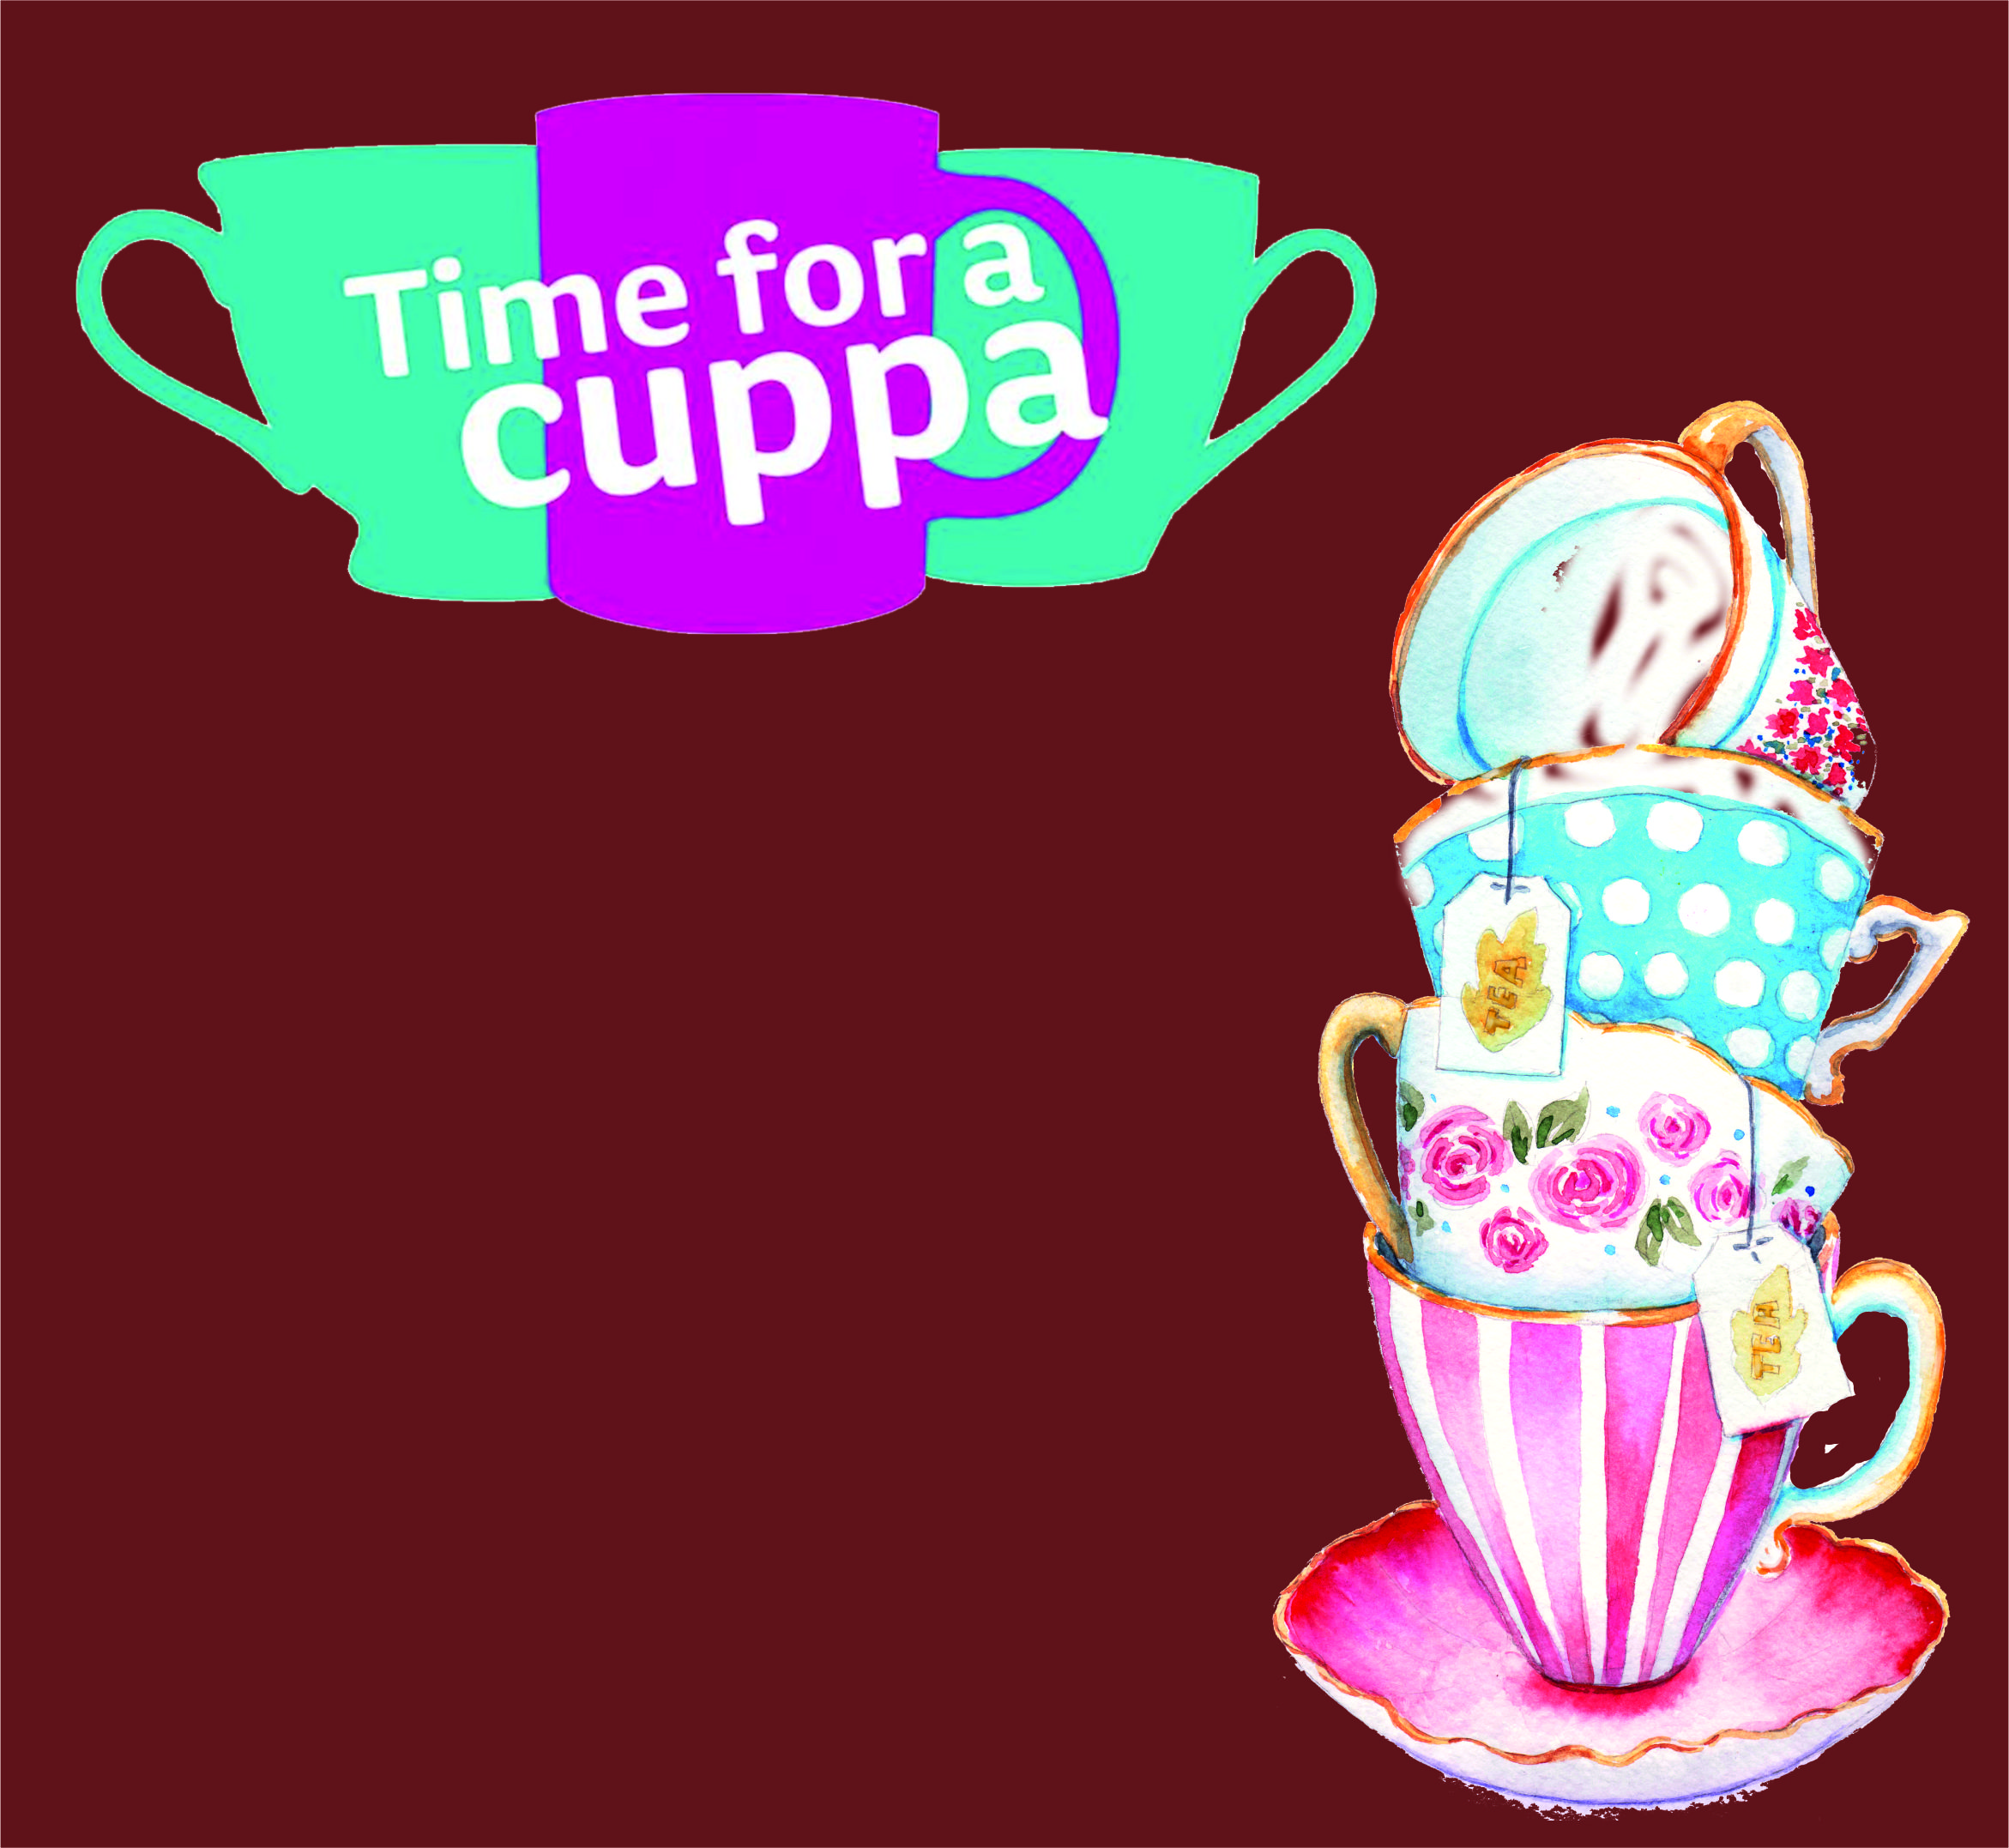 Events Template 2020 cuppa WG